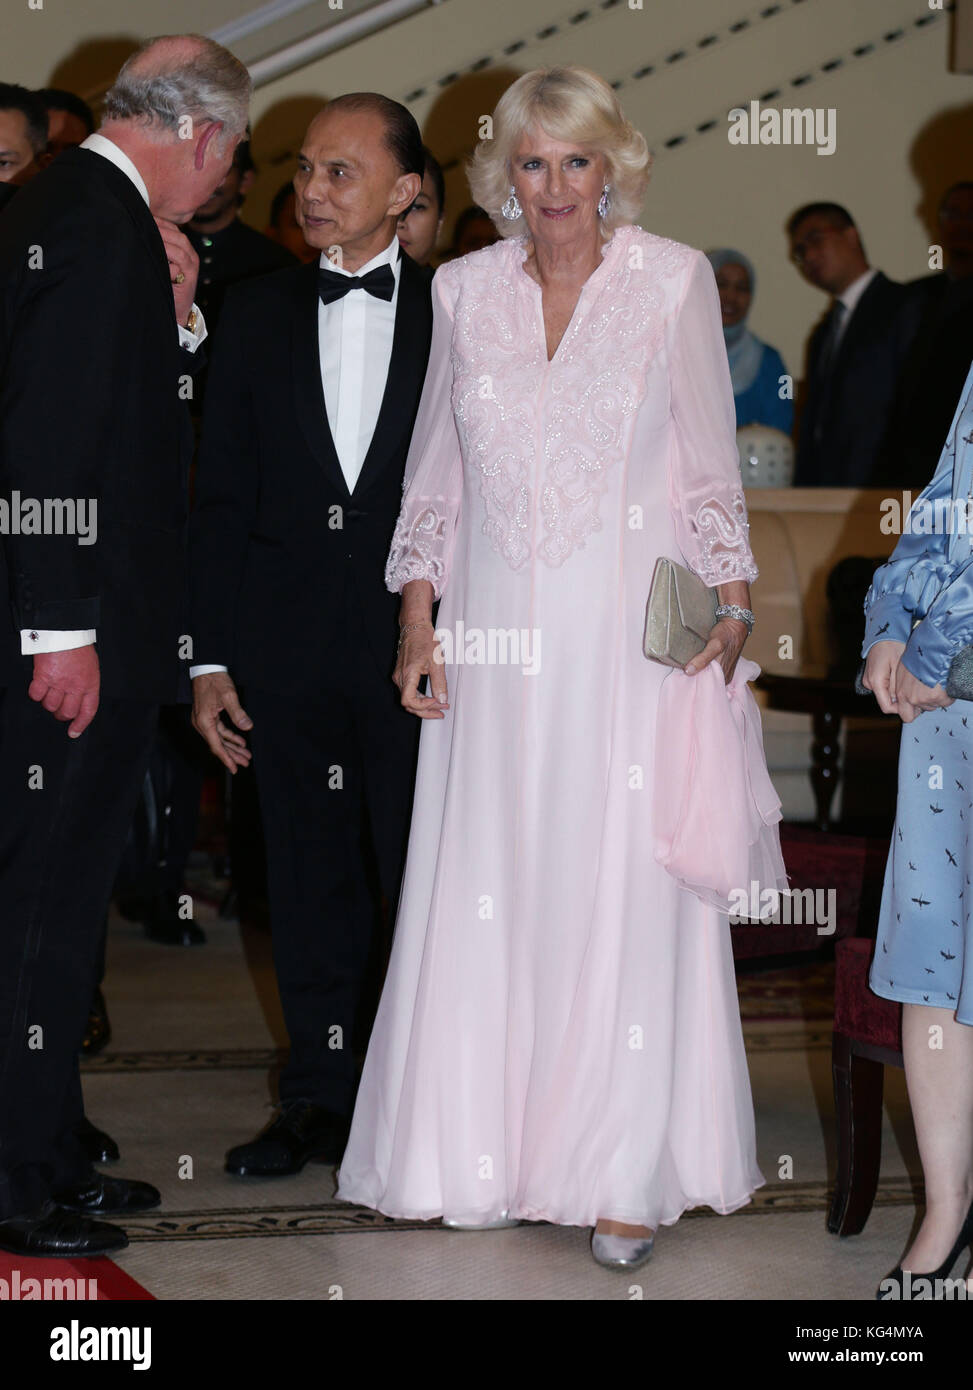 fd5e549ea9b The Prince of Wales and the Duchess of Cornwall speak with shoe designer  Jimmy Choo as they attend a Gala Dinner to celebrate 60 years of UK Malaysia  ...